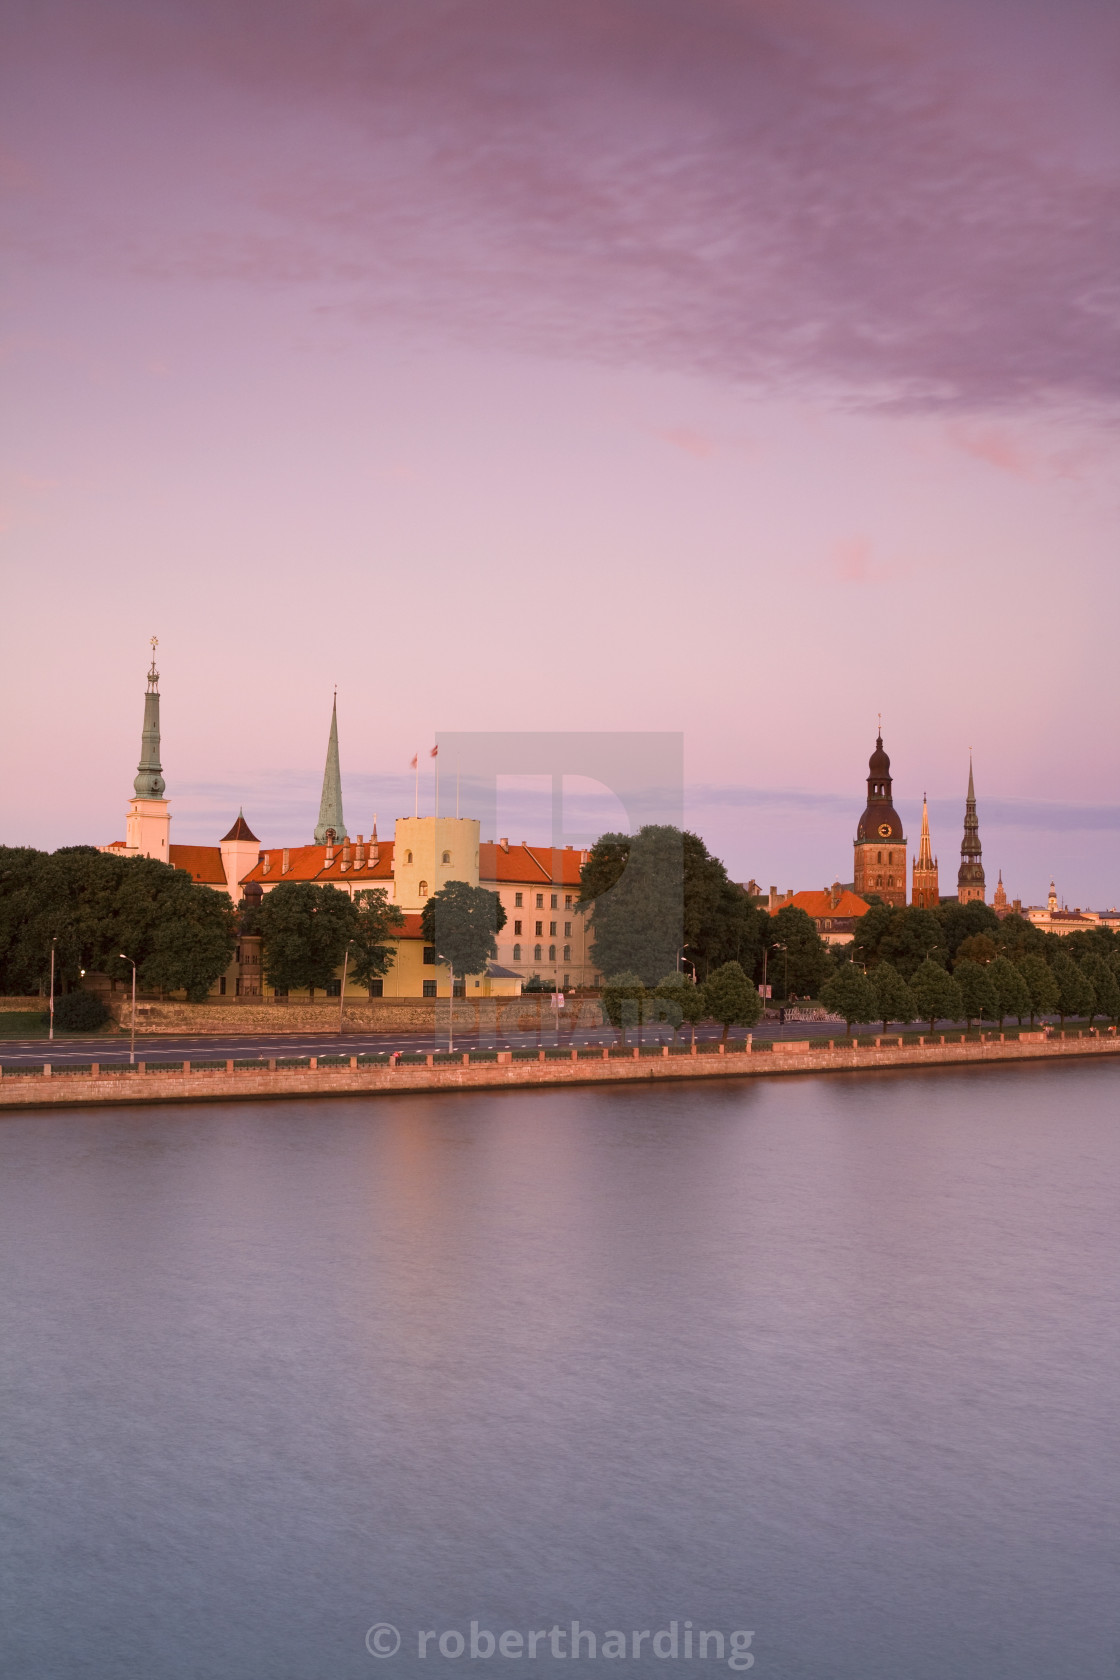 """Riga Castle and the River Daugava illuminated at sunset, Riga, Latvia, Europe"" stock image"